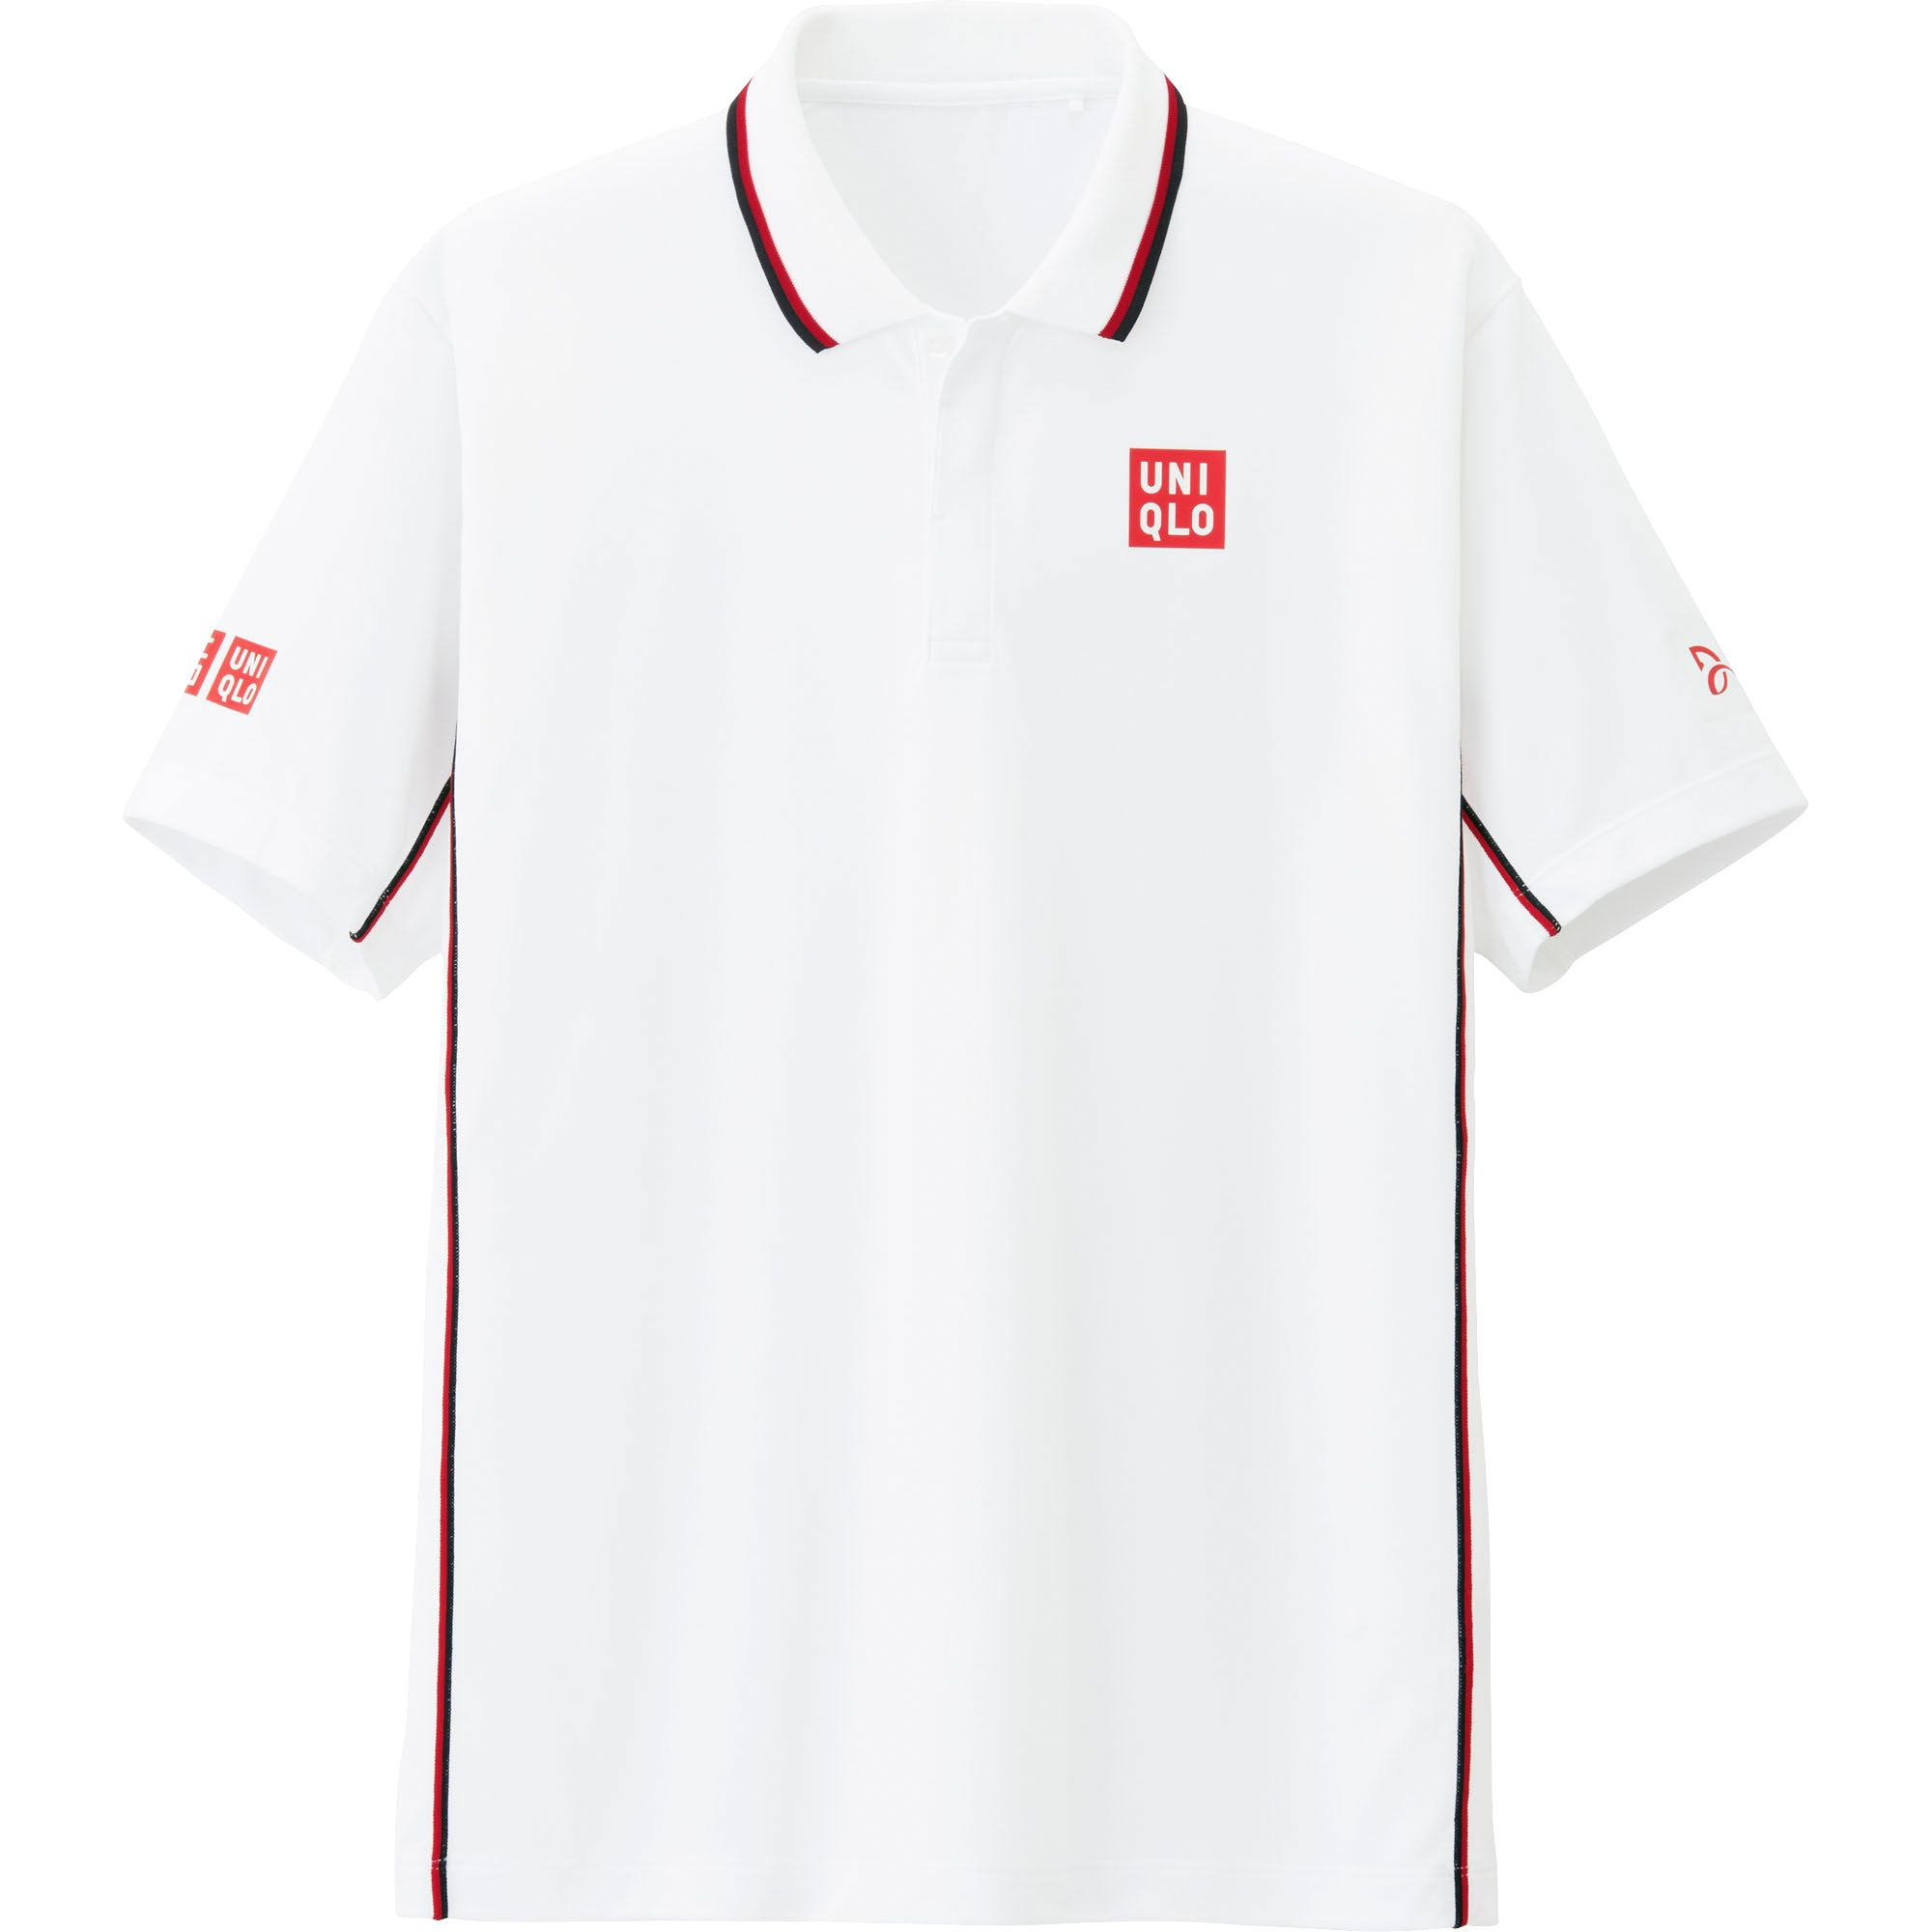 Uniqlo is a successful global Japanese fast fashion retail brand competing globally on design innovation, good quality, affordability, fashionable apparel products and an authentic in-store customer experience. The business, brand and retail strategy behind Uniqlo .